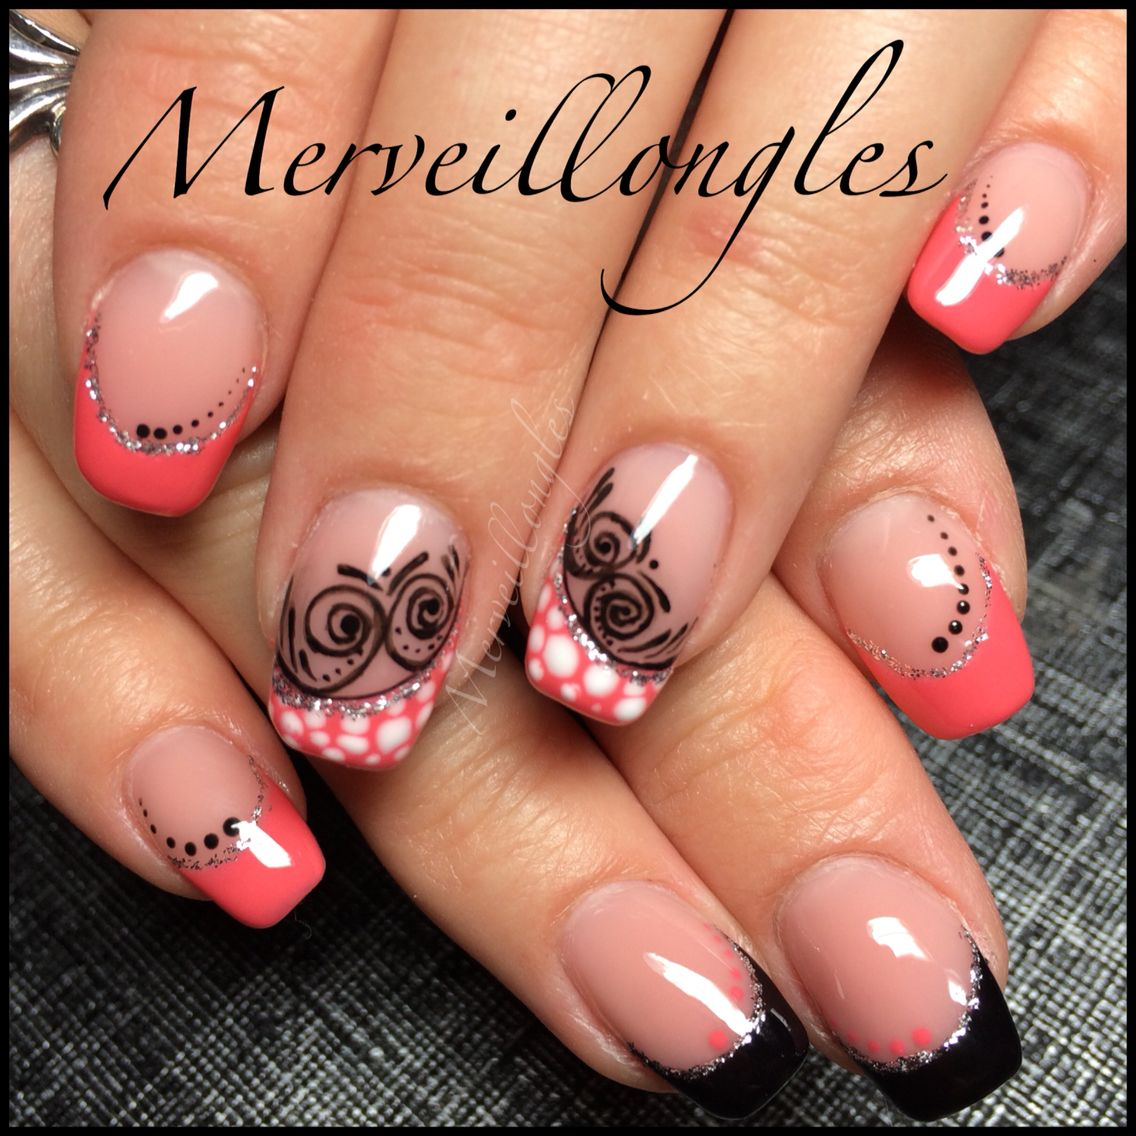 Faux ongles gel uv corail pois arabesques